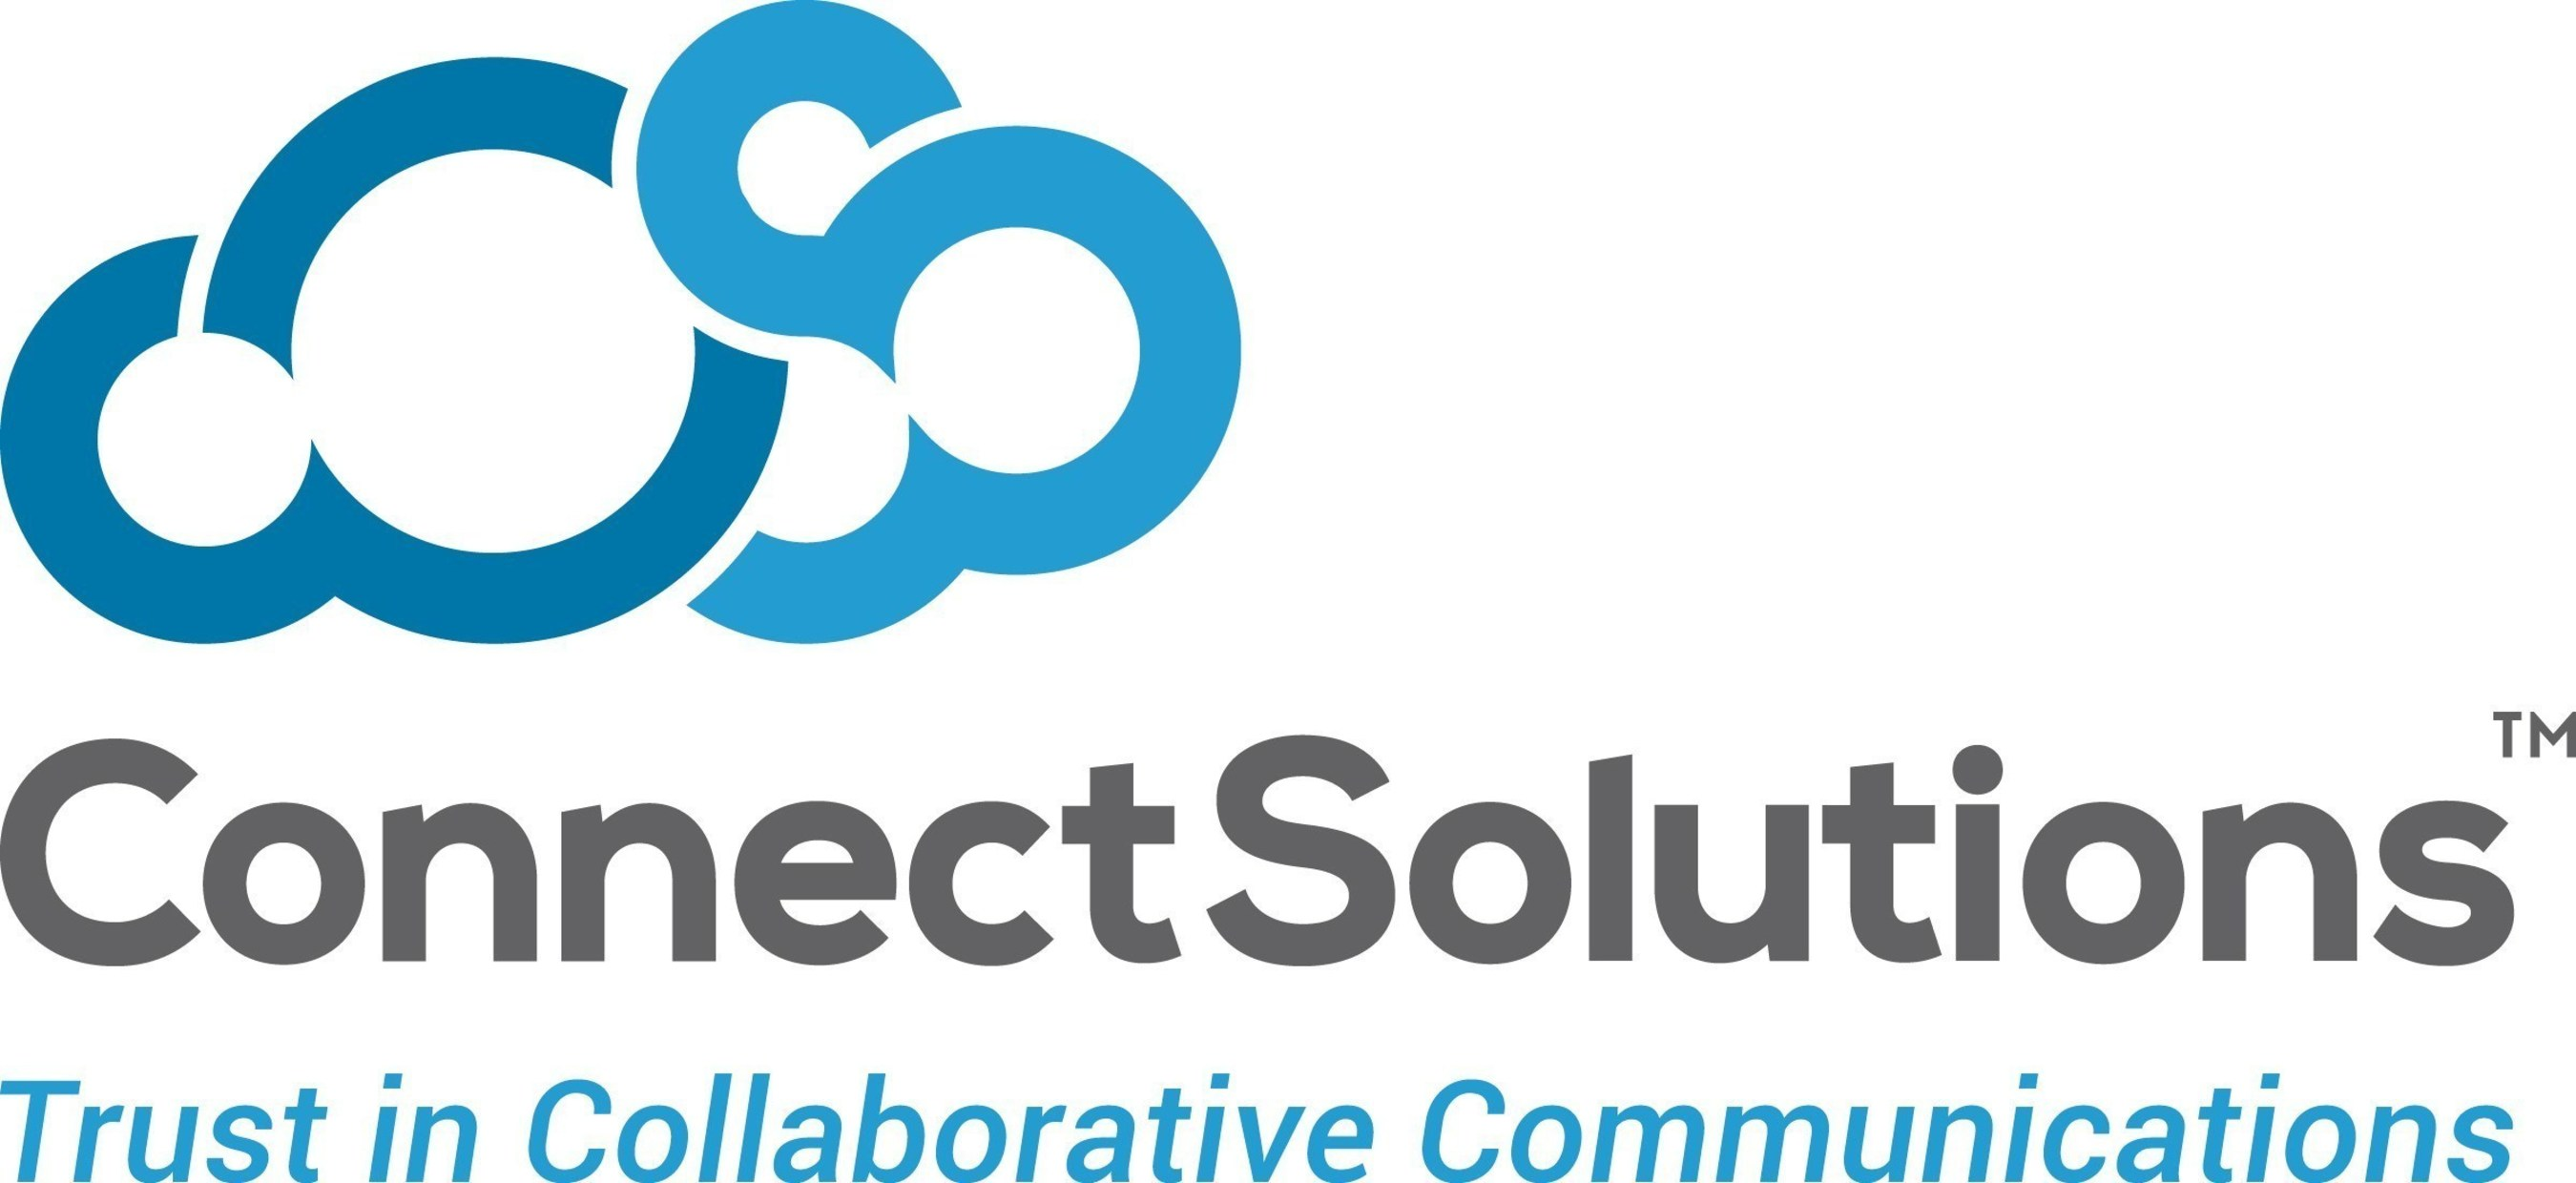 ConnectSolutions Launches Industry's First End-to-End Suite of Expert Professional and Managed